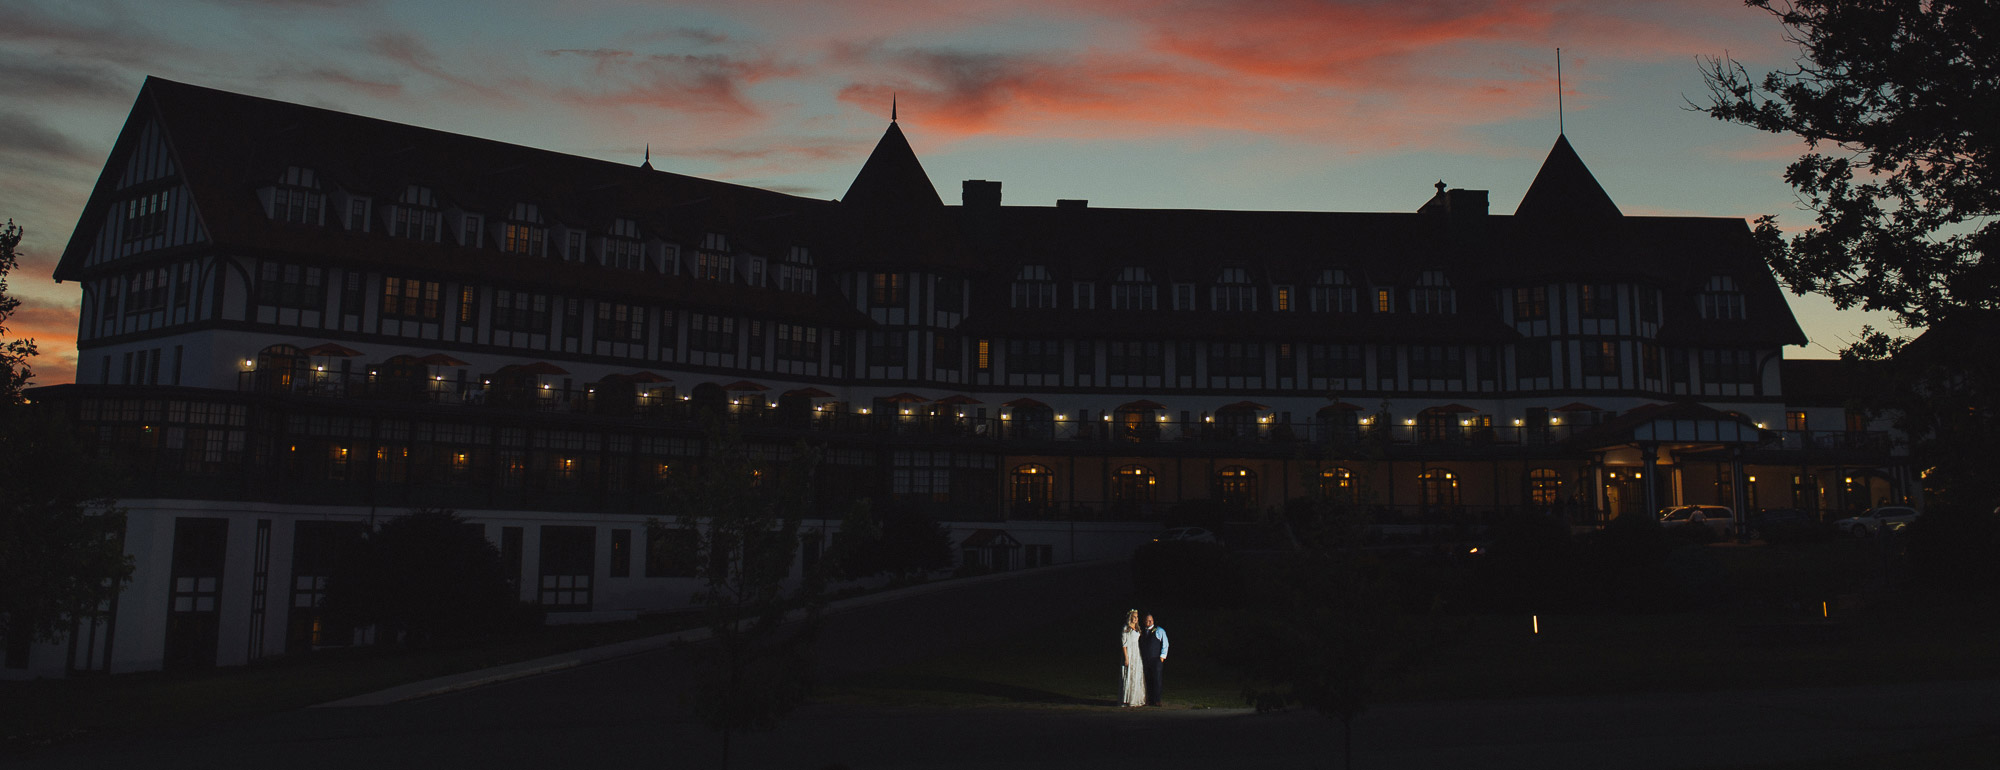 Algonquin Wedding at night